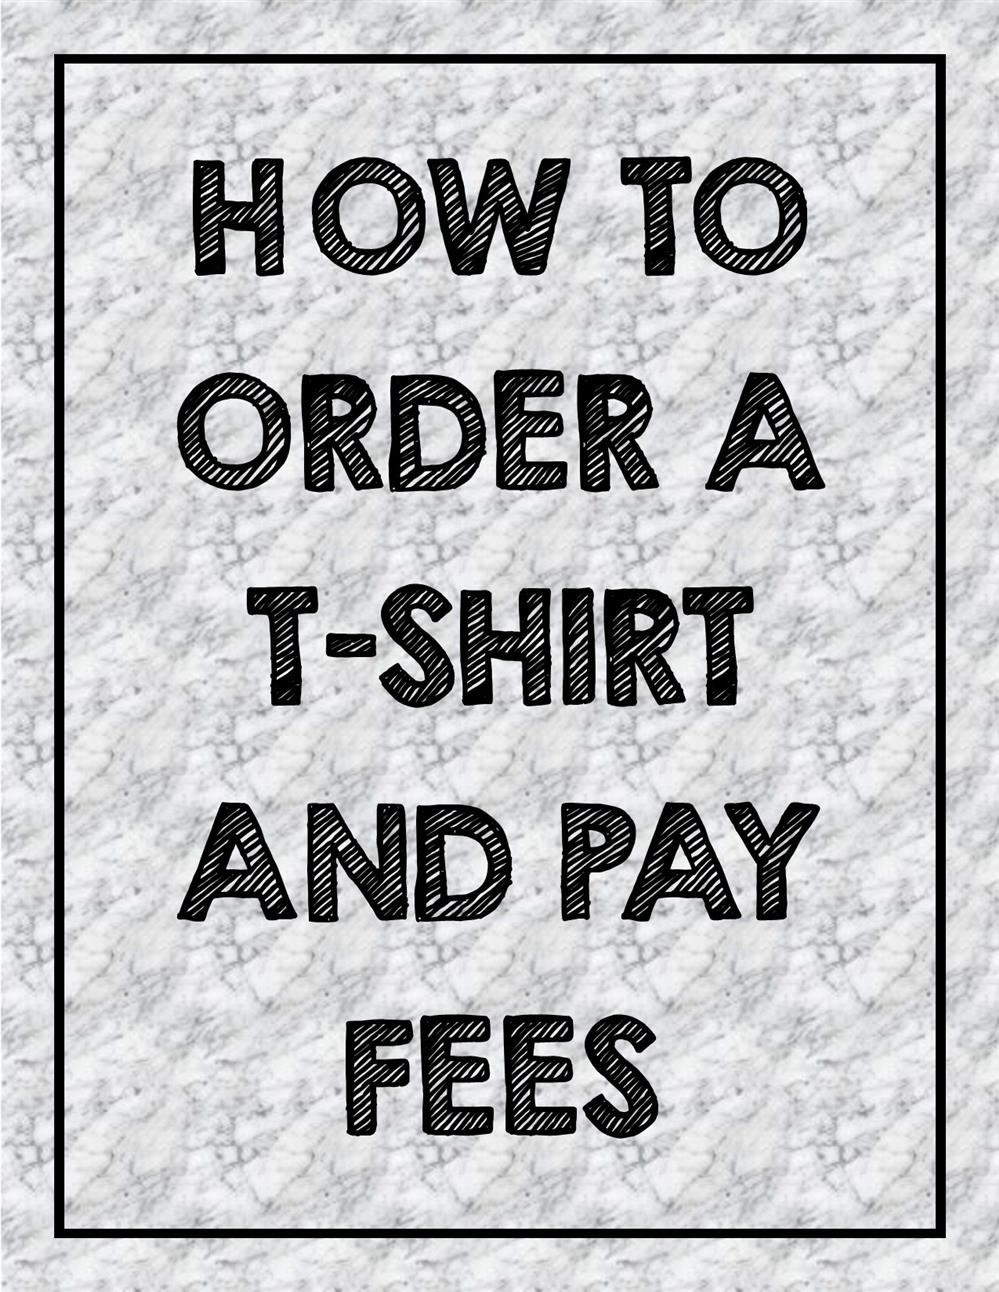 ORDER T-SHIRTS and PAY FEES